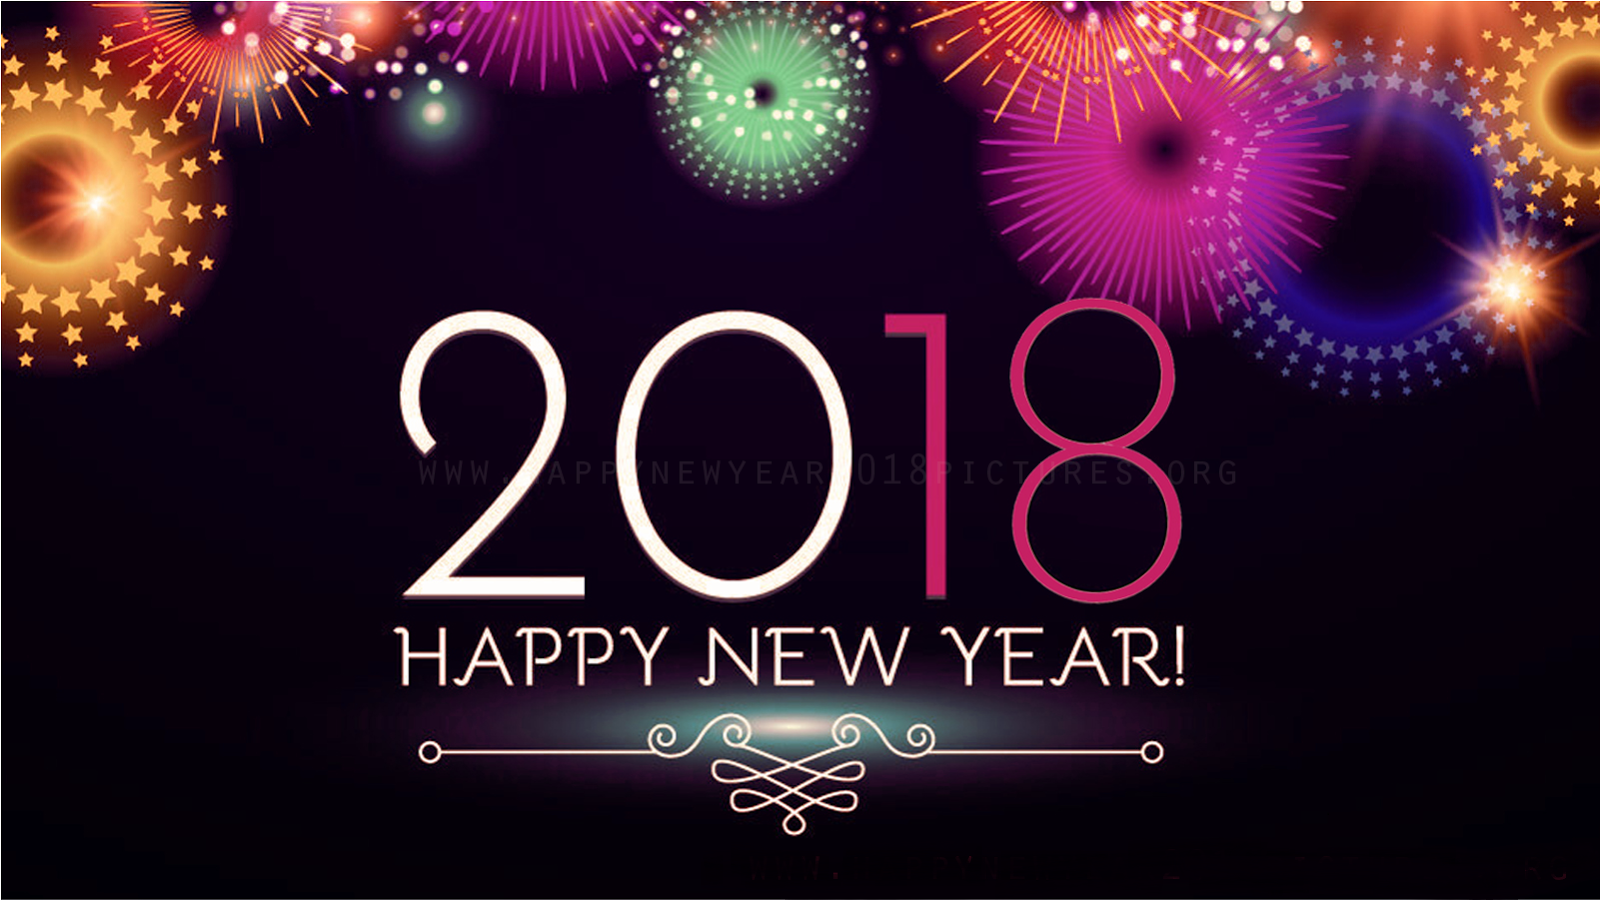 2018 Happy New year best hd wallpapers free Download